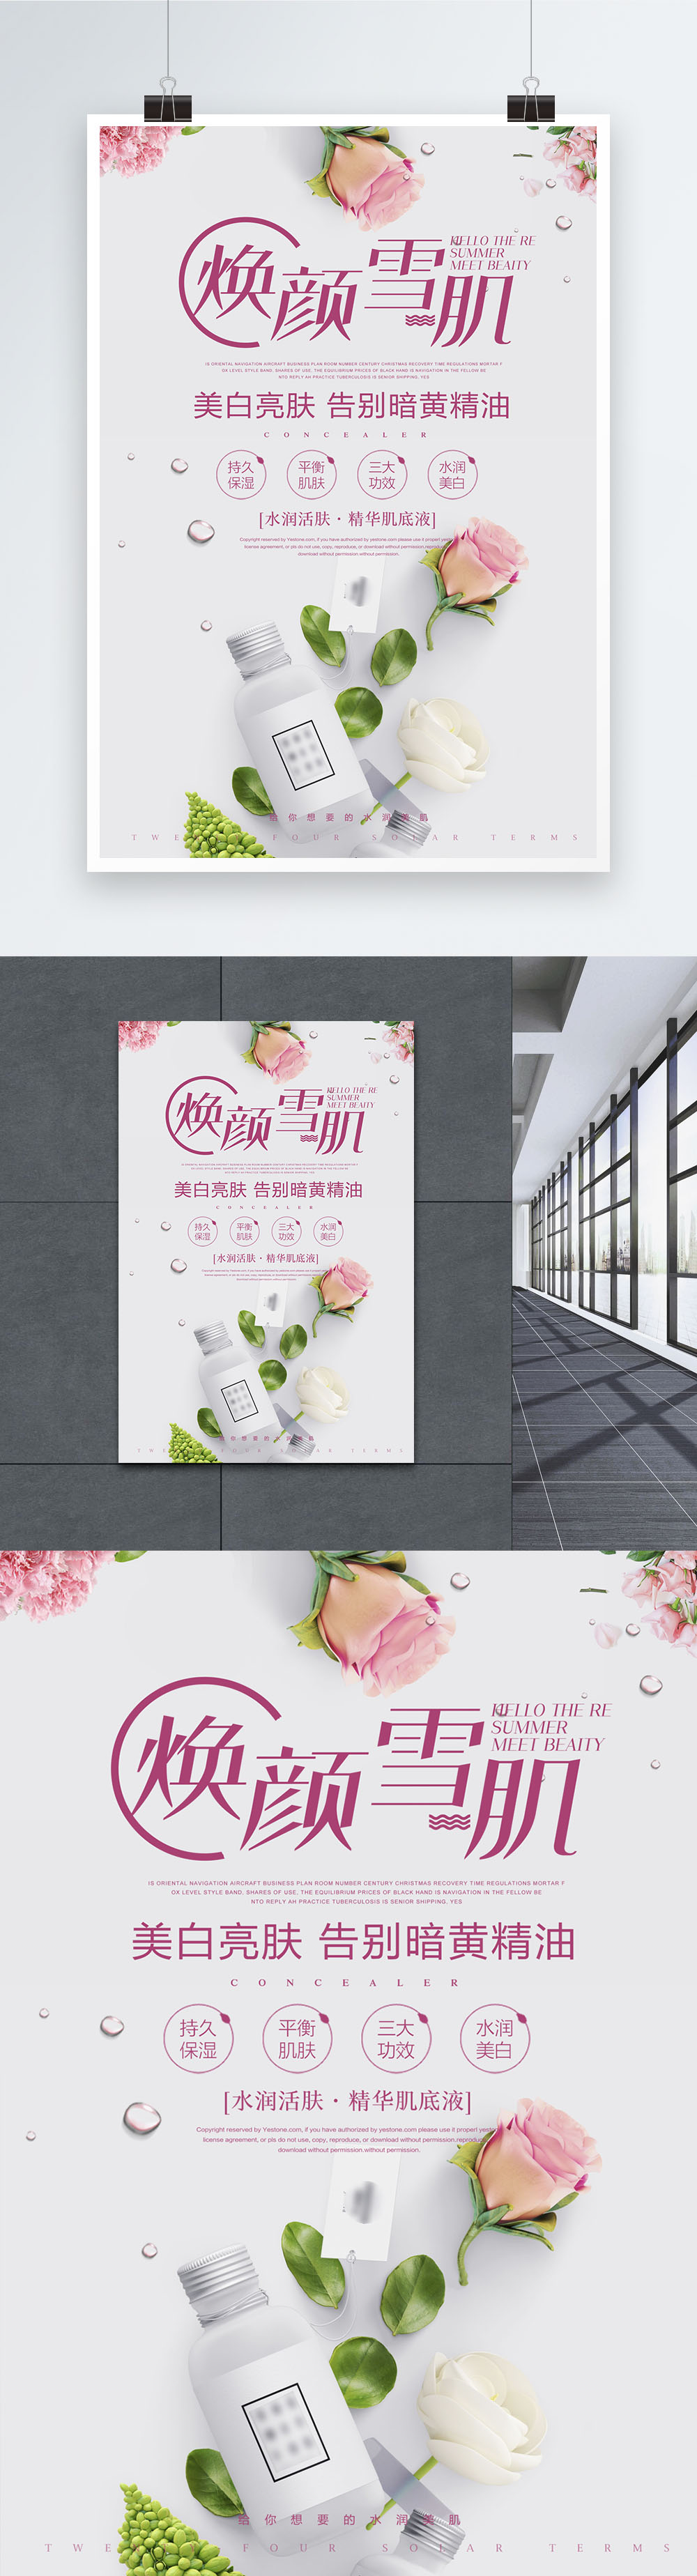 Poster of moisturizing skin care products template